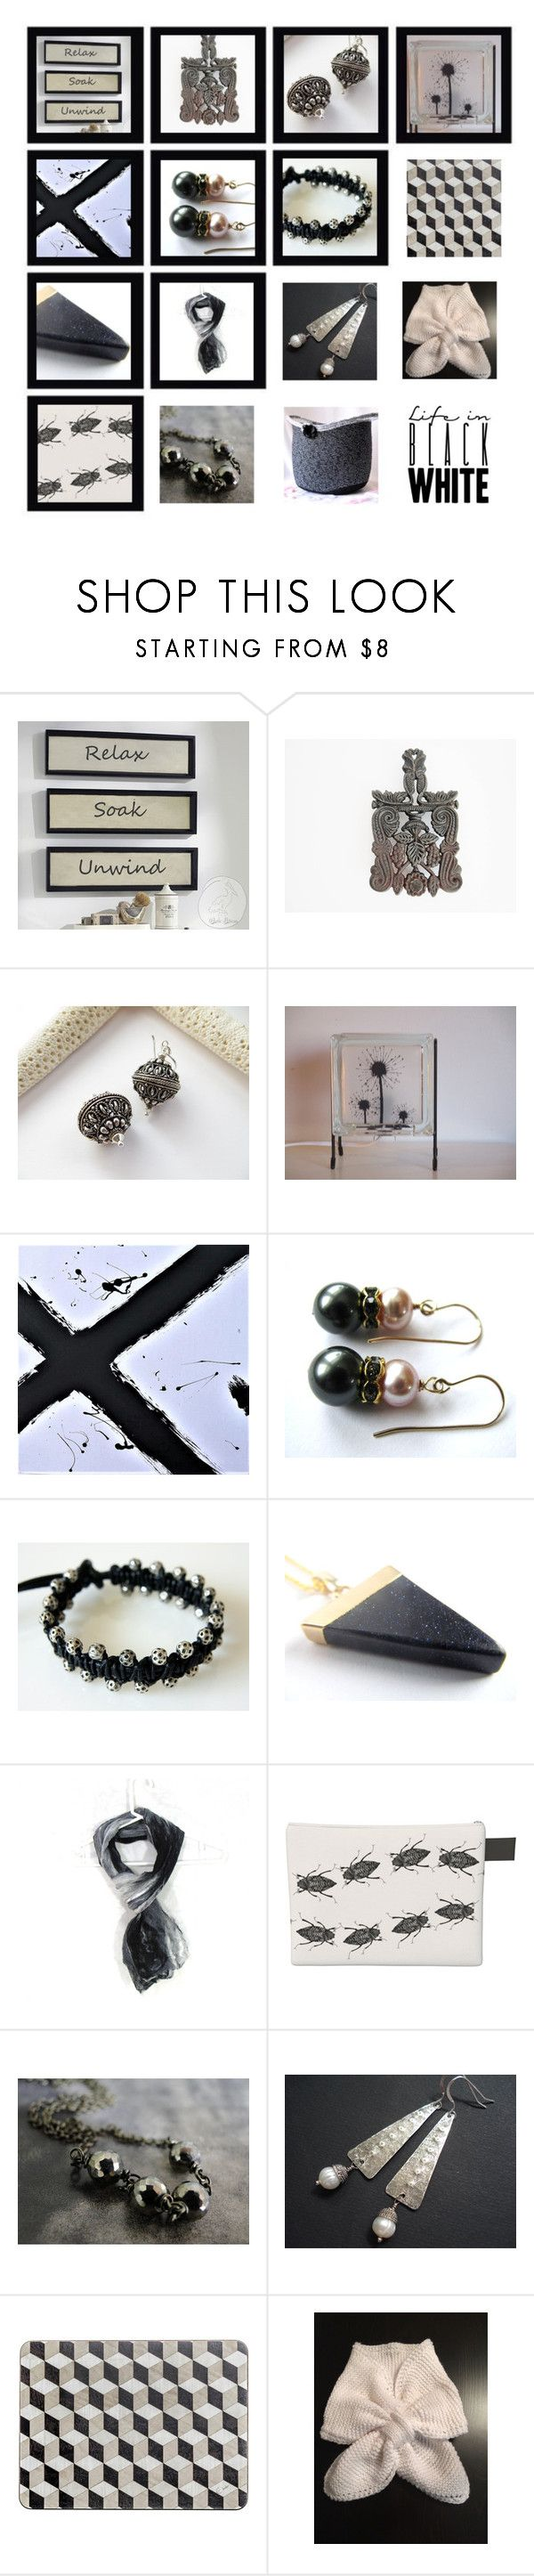 """""""Life in Black and White"""" by whimzingers ❤ liked on Polyvore featuring Hostess and vintage"""